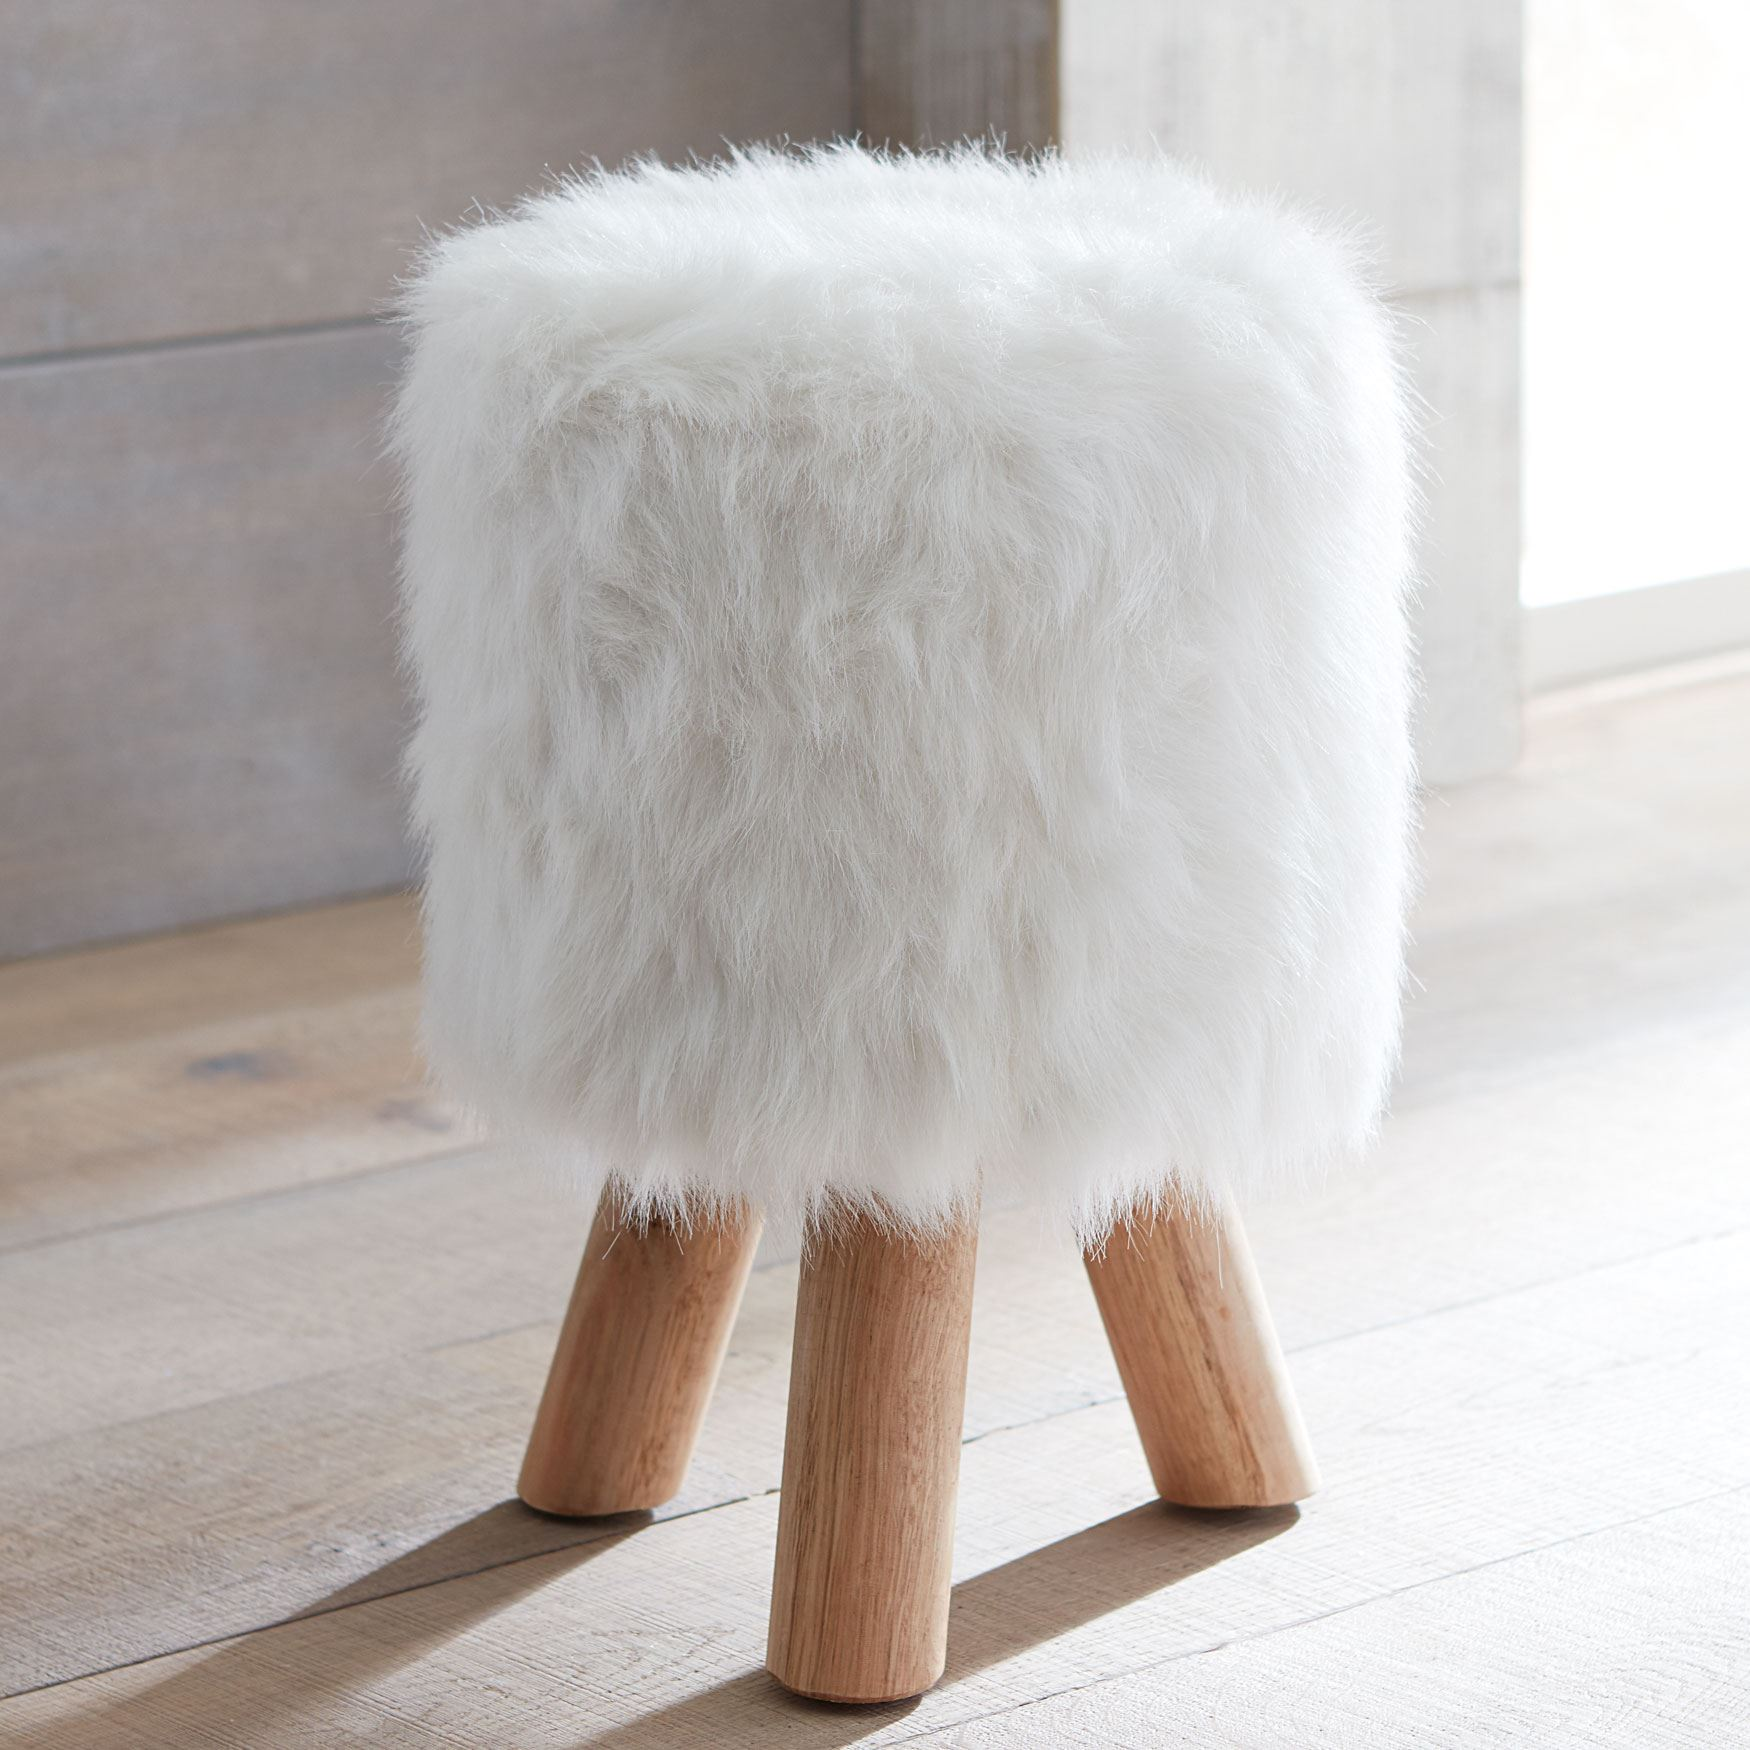 Fuzzy White Chair Tae Fuzzy Footstool Plus Size Furniture Brylane Home